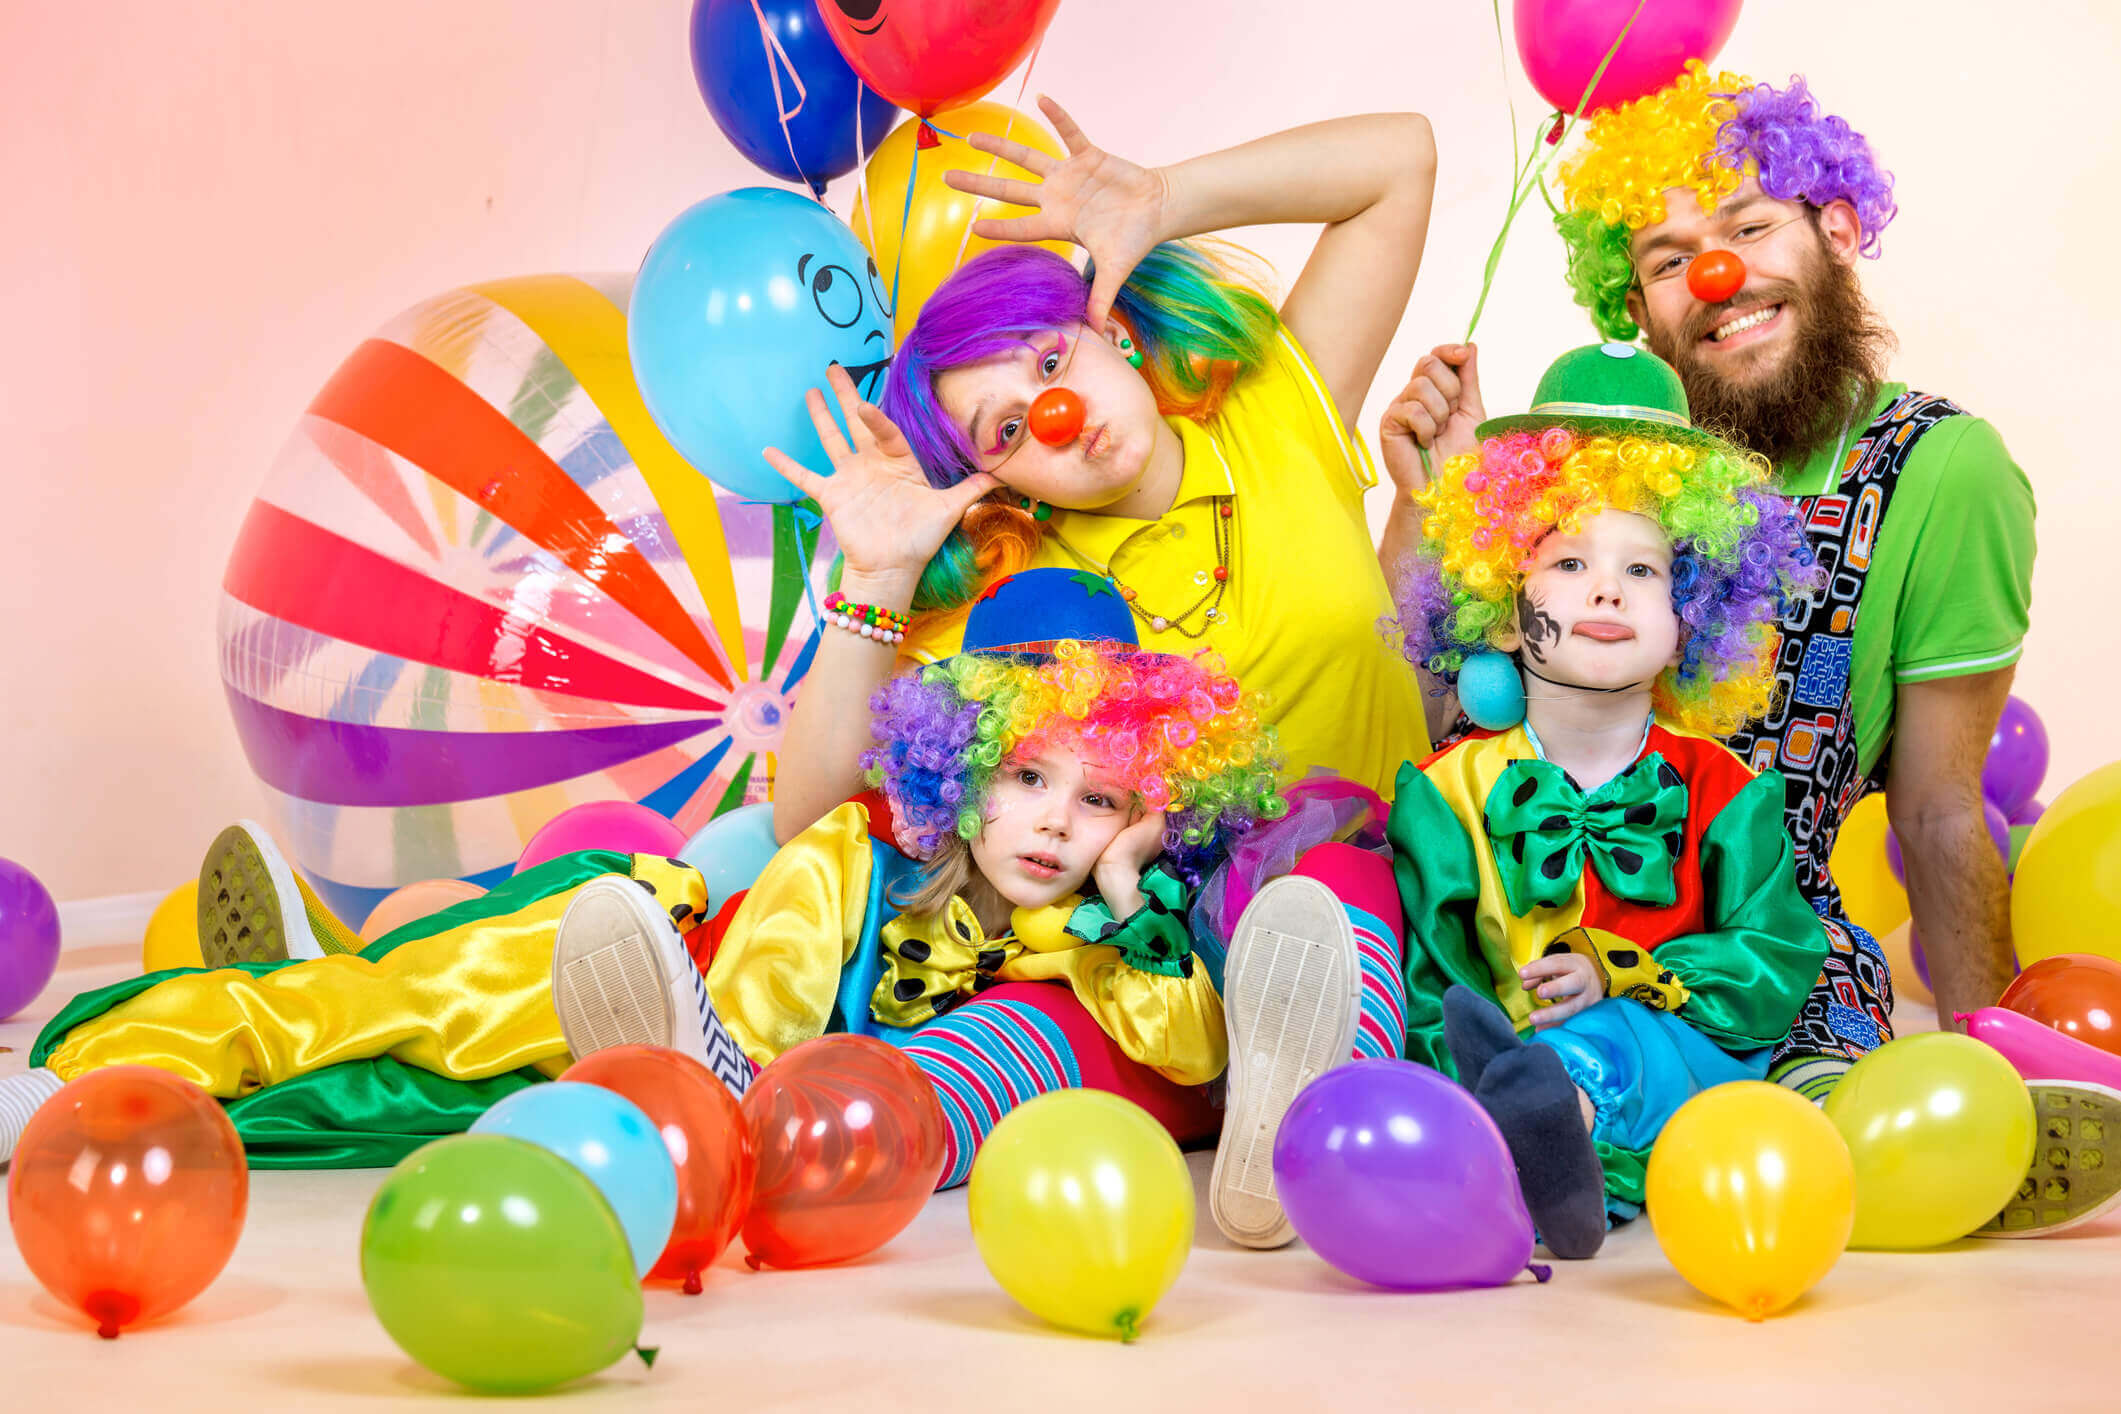 Children's party entertainers can help keep the kids amused at large events.